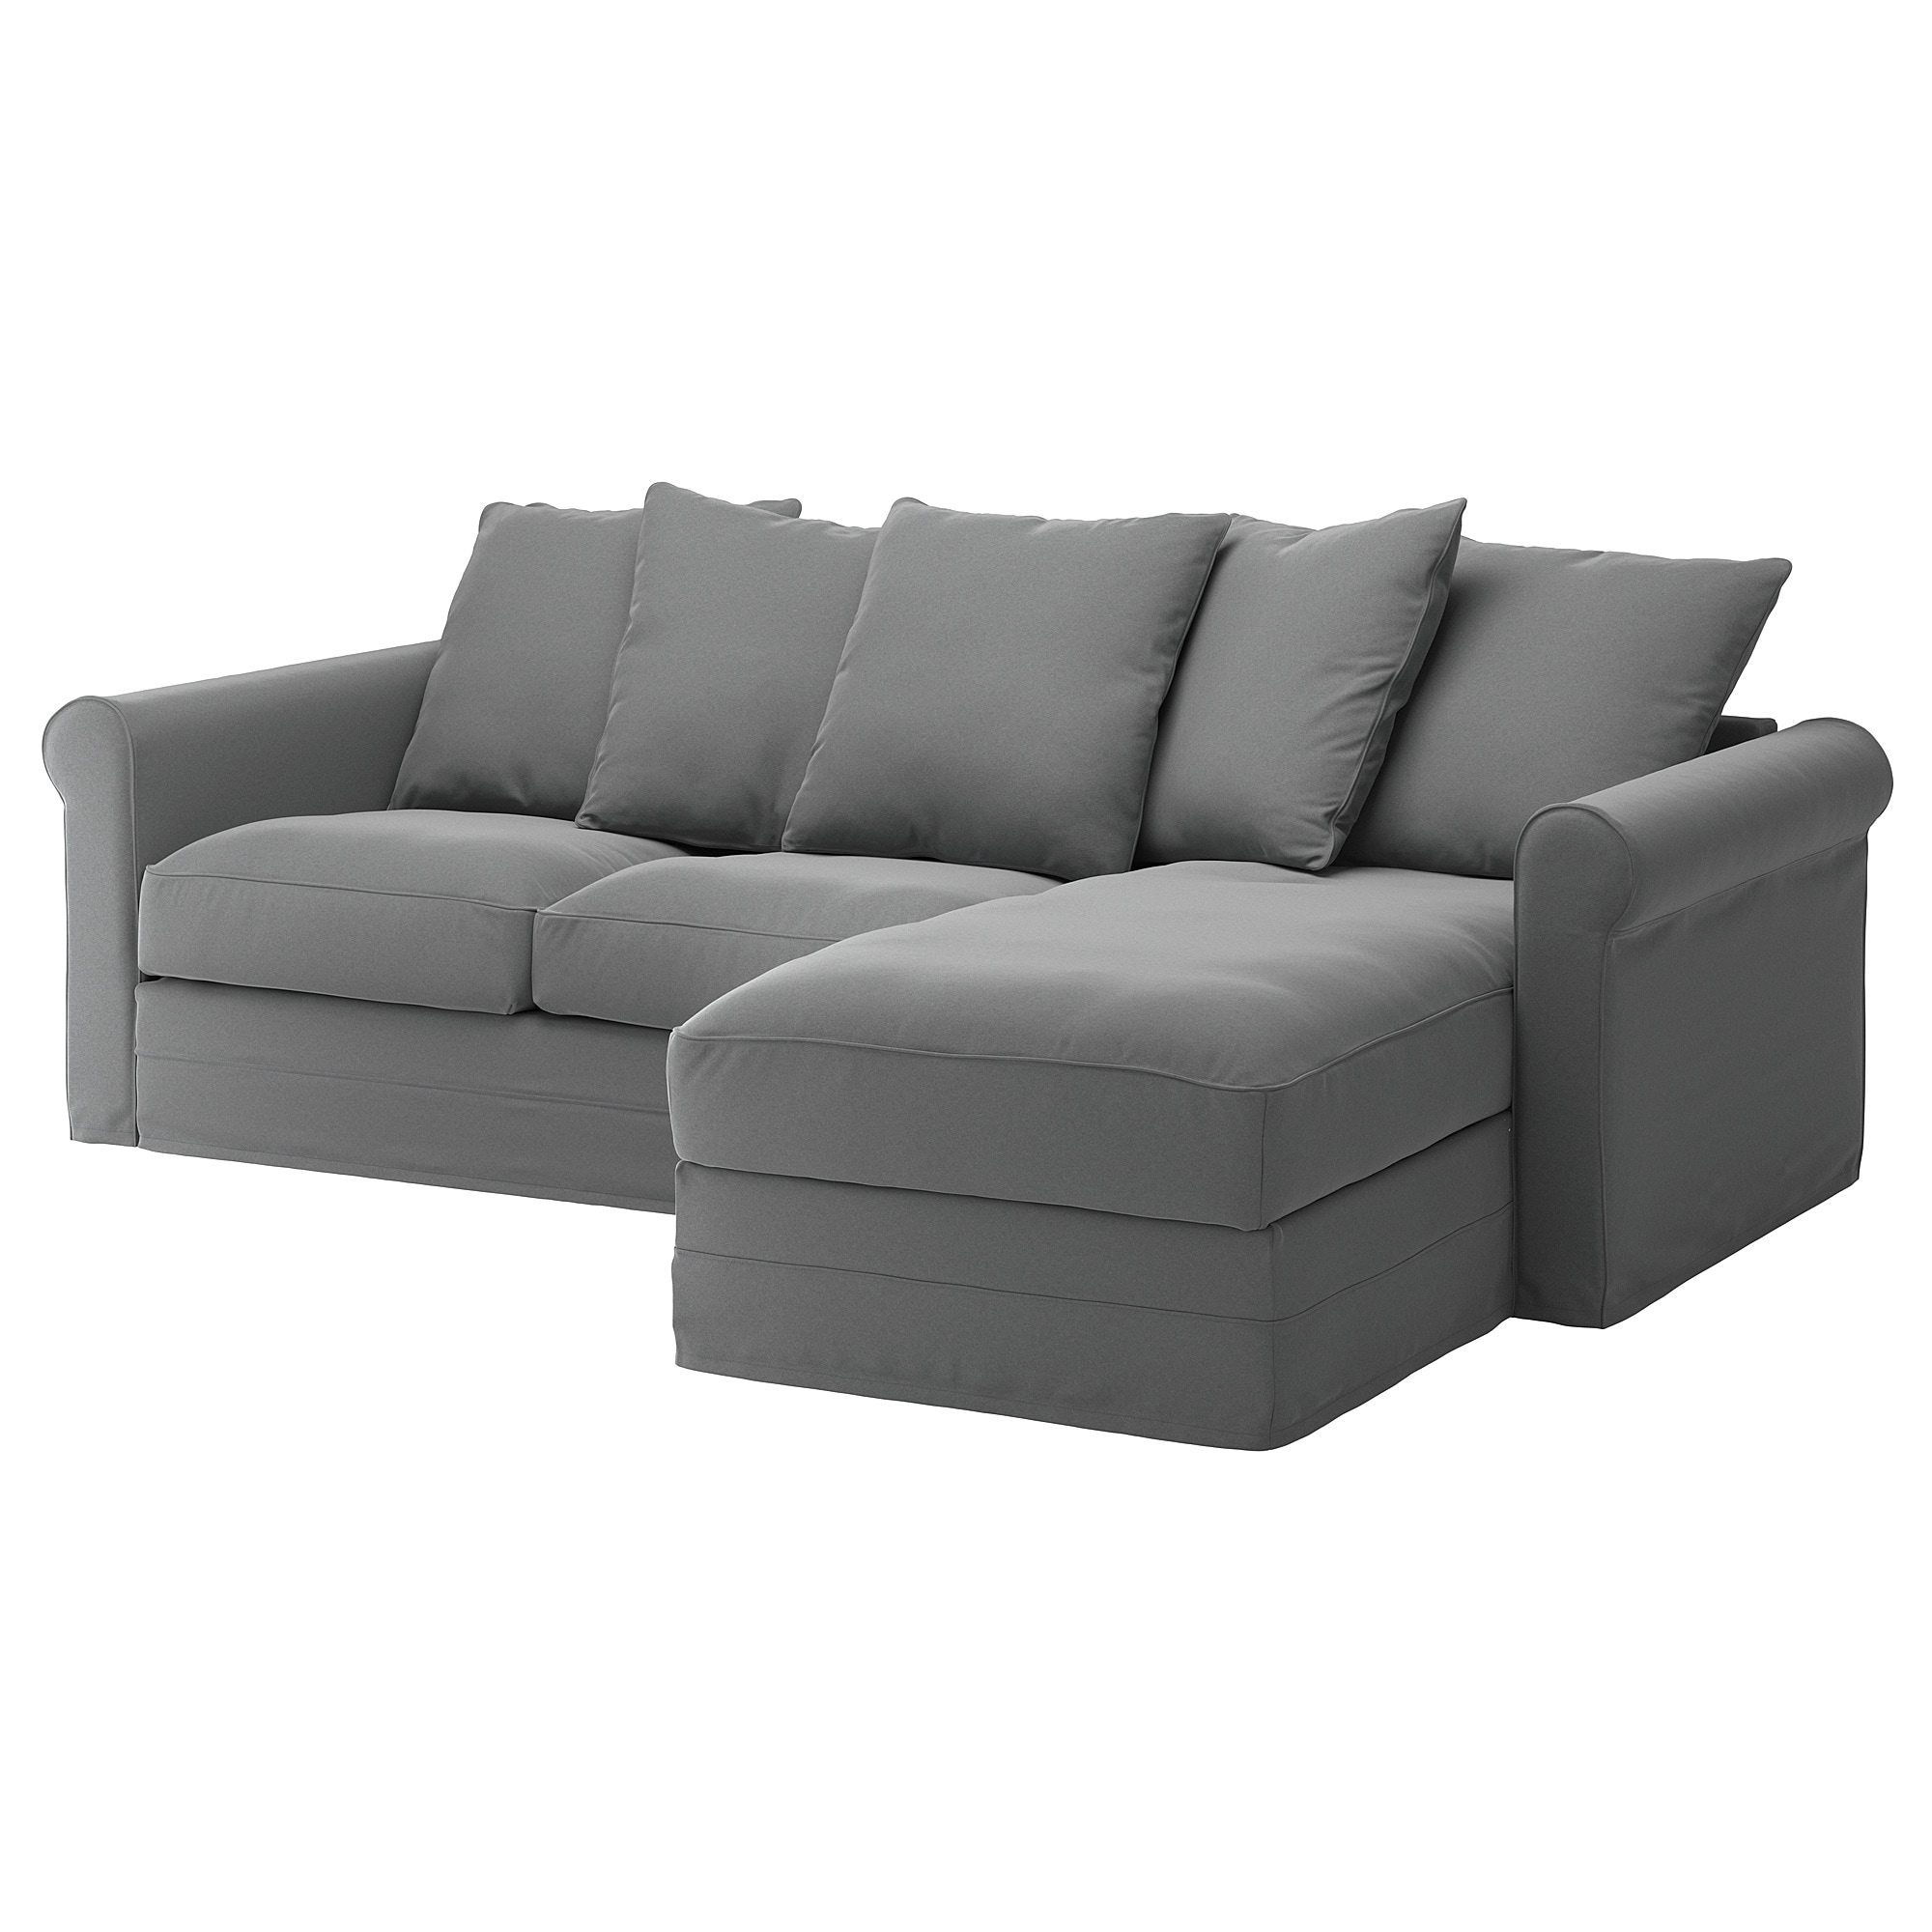 Halifax Inspirational Sofa Bed GrÖnlid Sofa With Chaise Ljungen Medium Gray